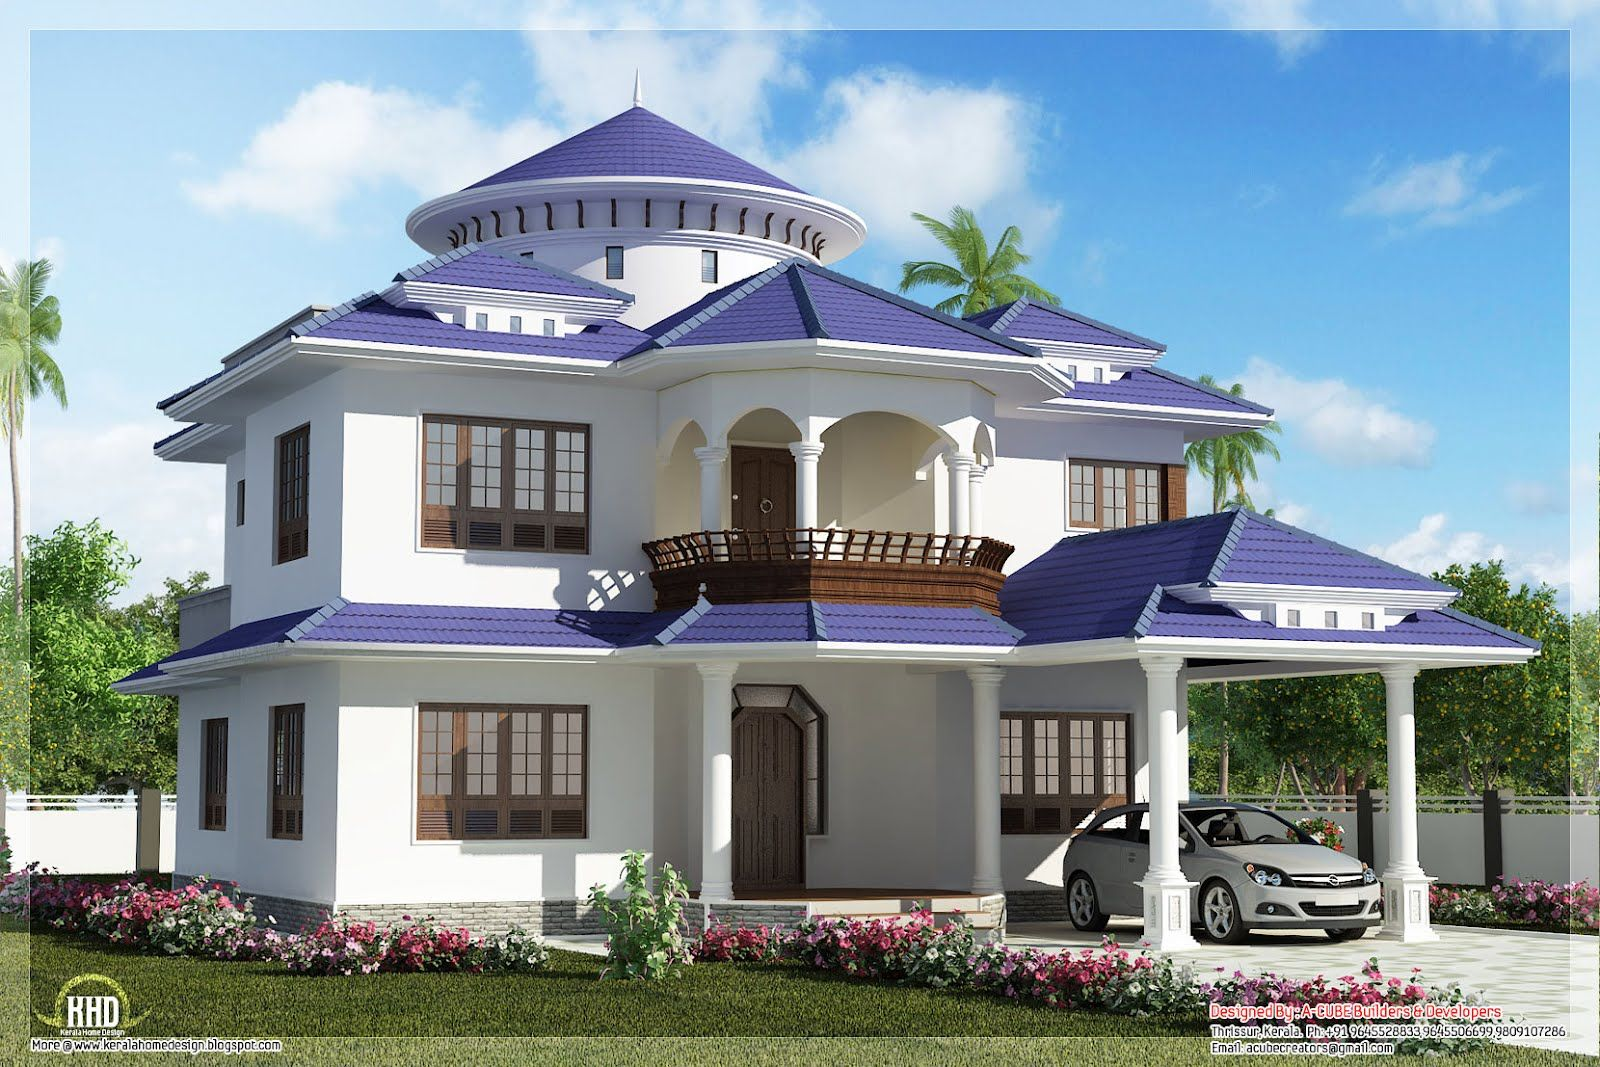 Proposed house renovation design for a single